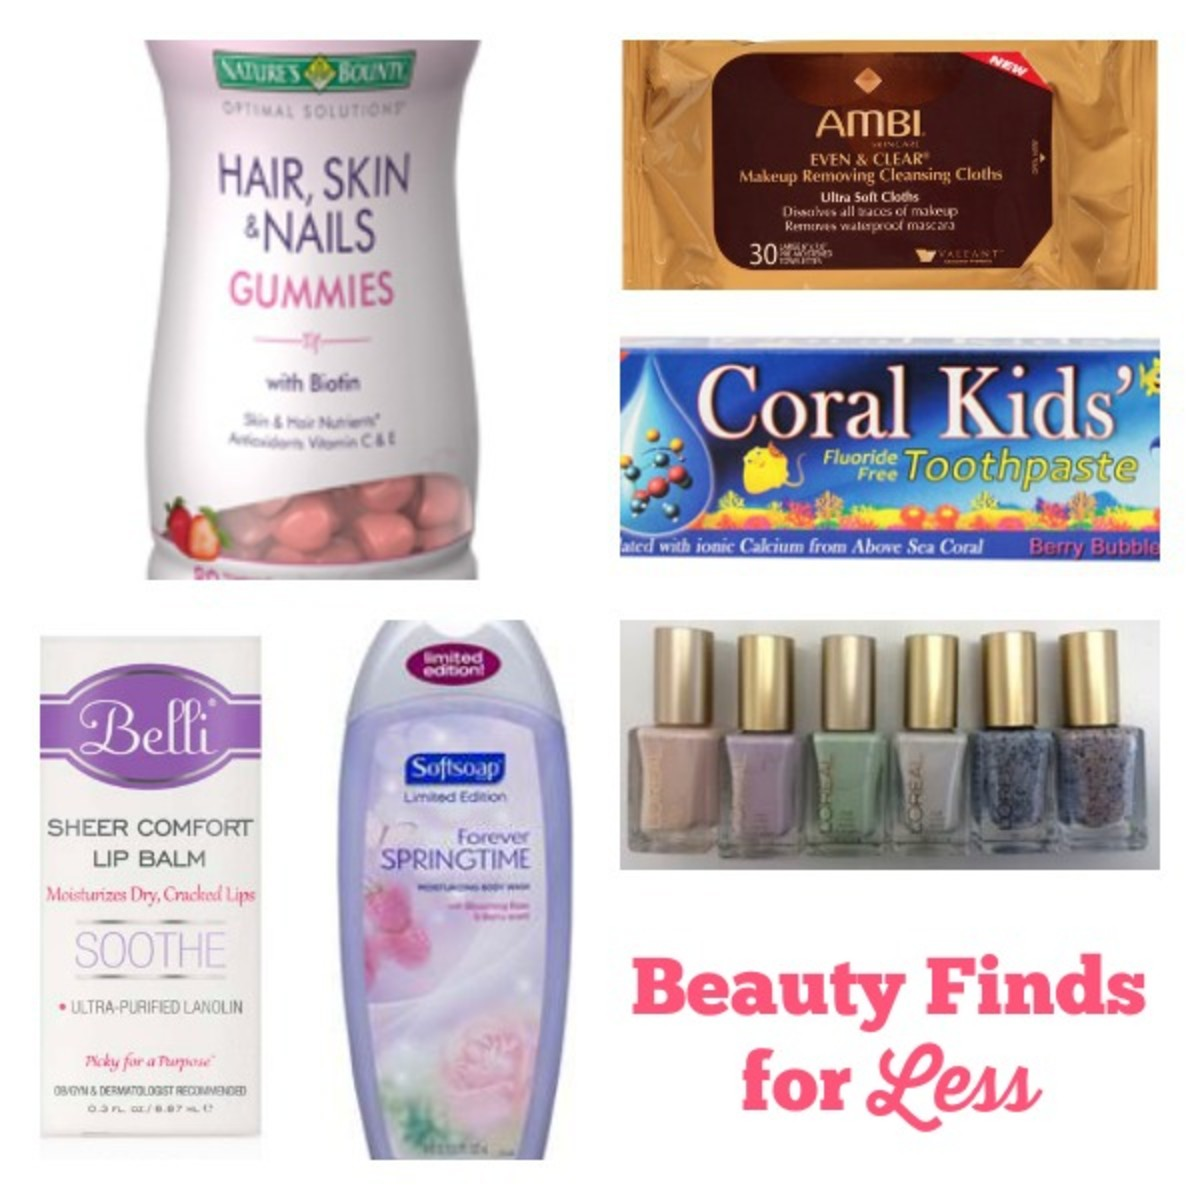 Beauty Finds for Less